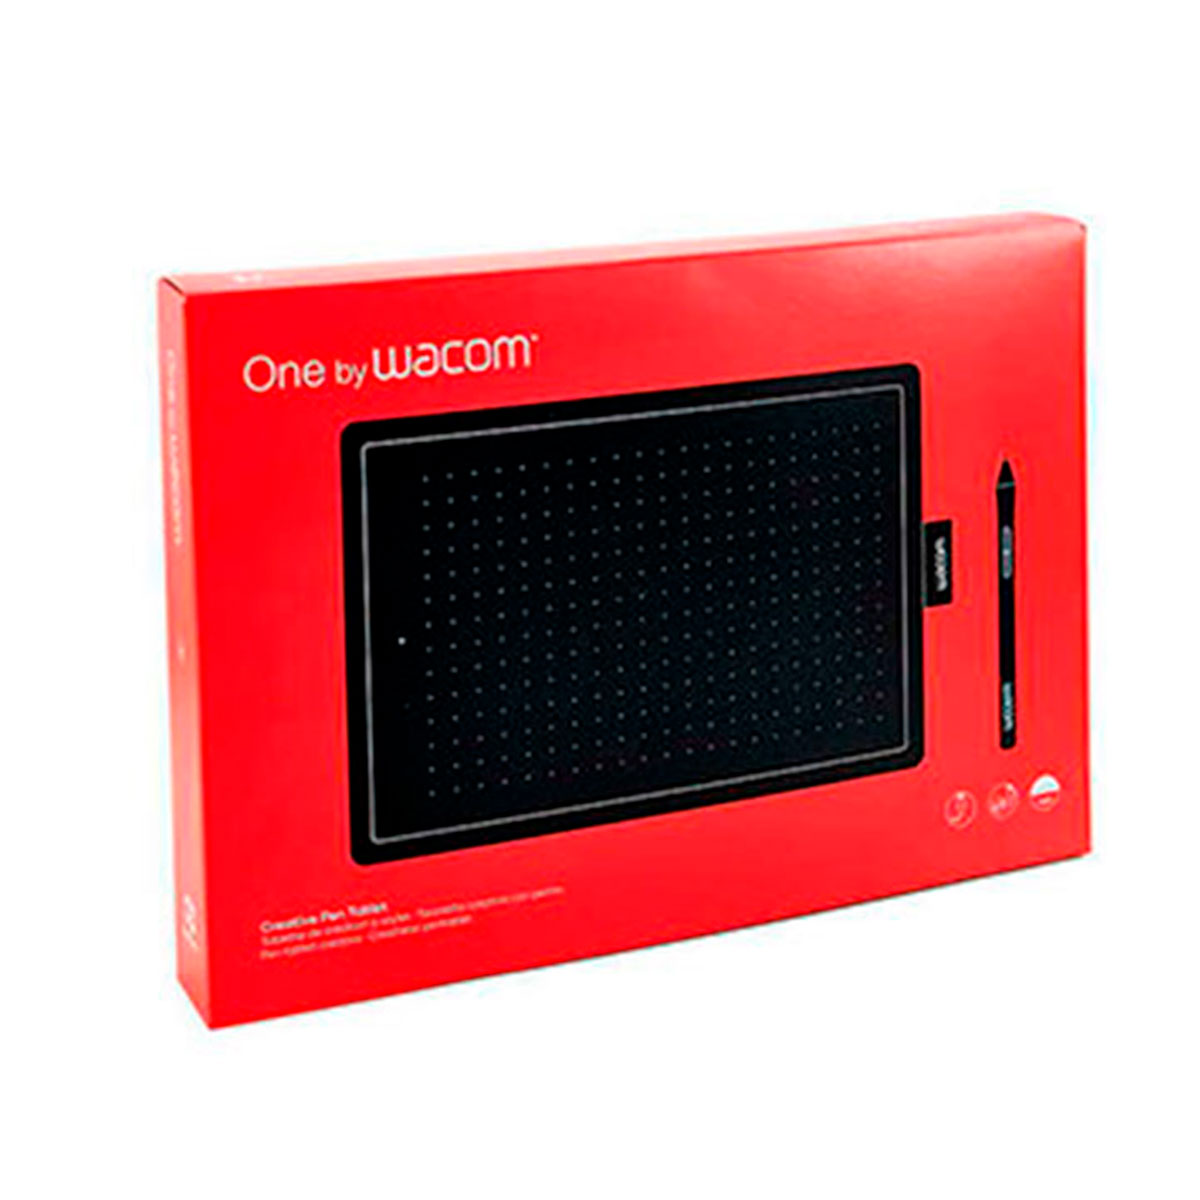 CTL472 WACOM                                                        | TABLETA ONE SMALL (210 X 146 X 8.7 MM) 2540 LPI USB